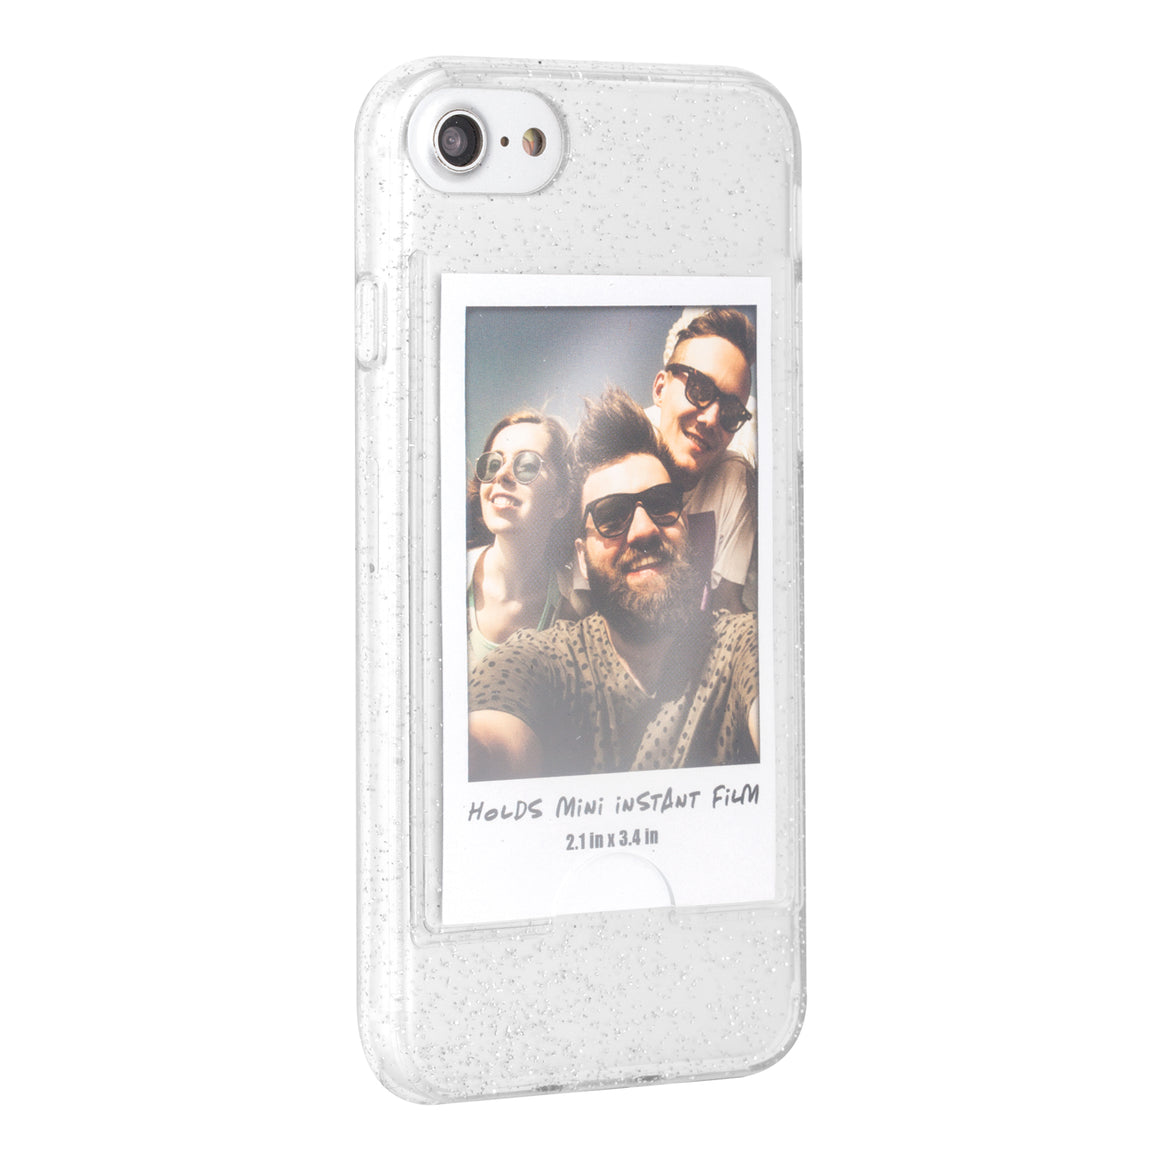 CYLO Instax iPhone Case With Photo Insert (iPhone 6S/7)